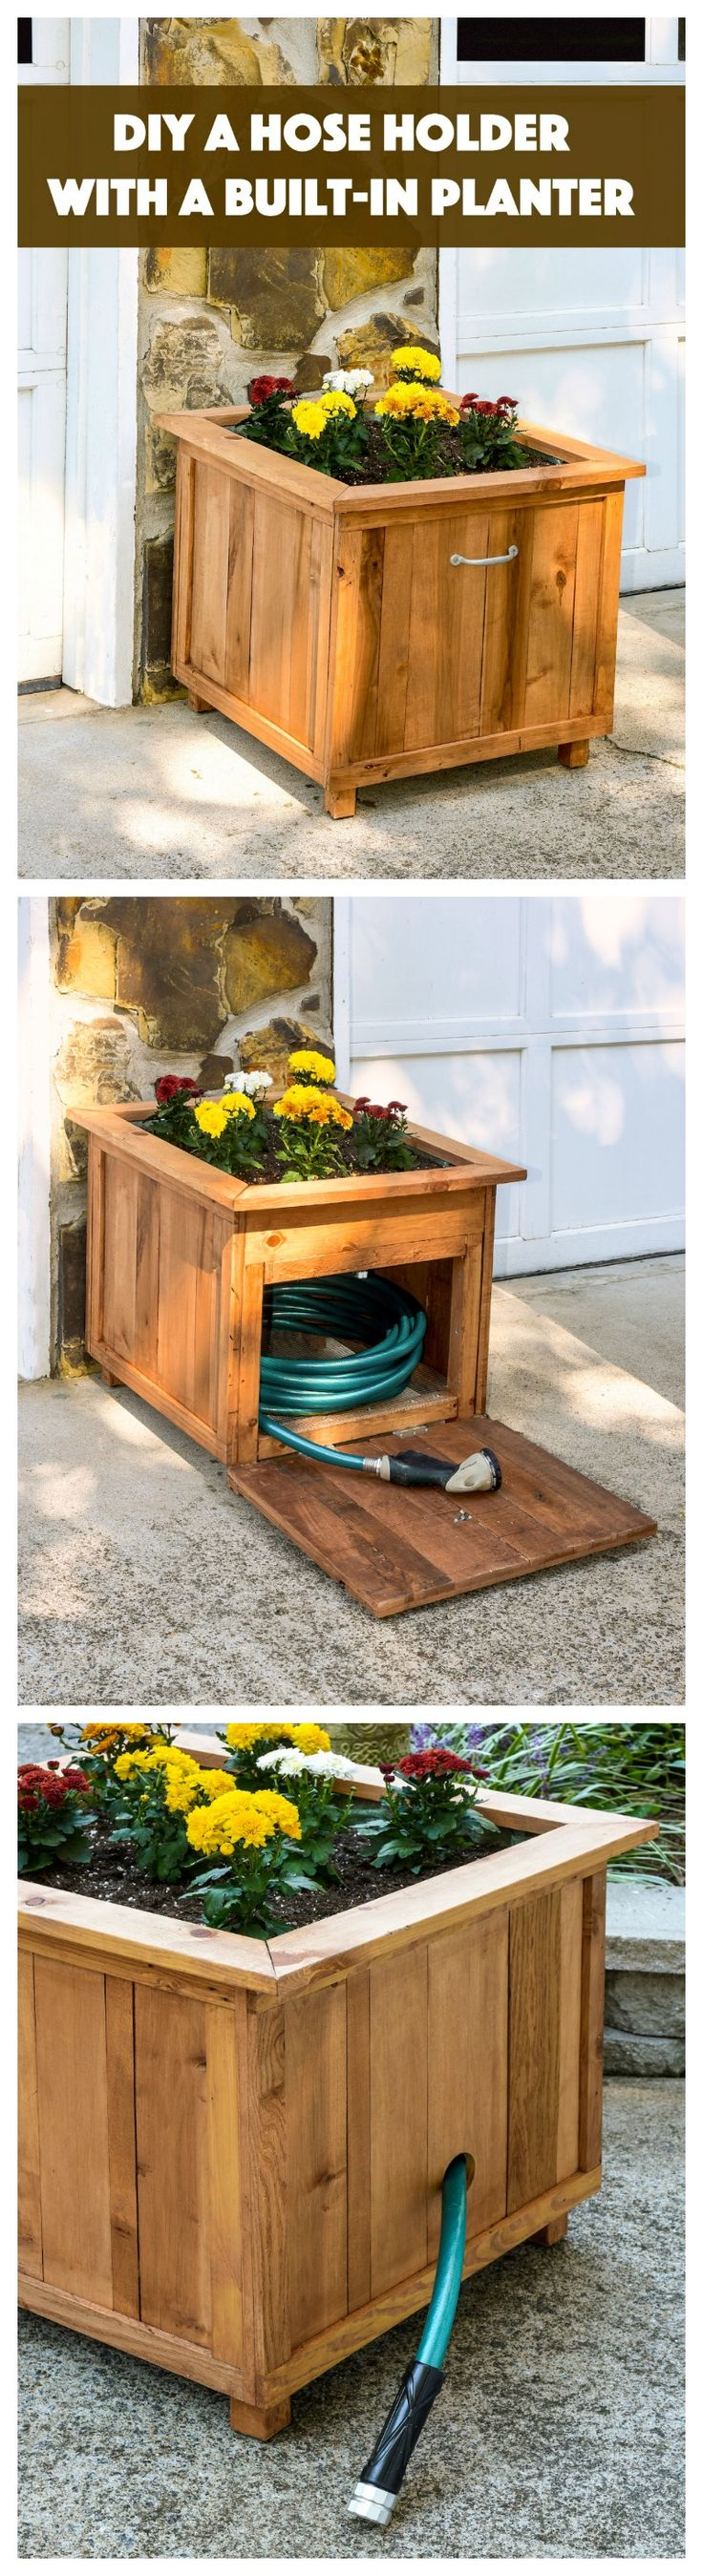 Build a unique DIY hose holder using recycled pallet wood This holder has a special